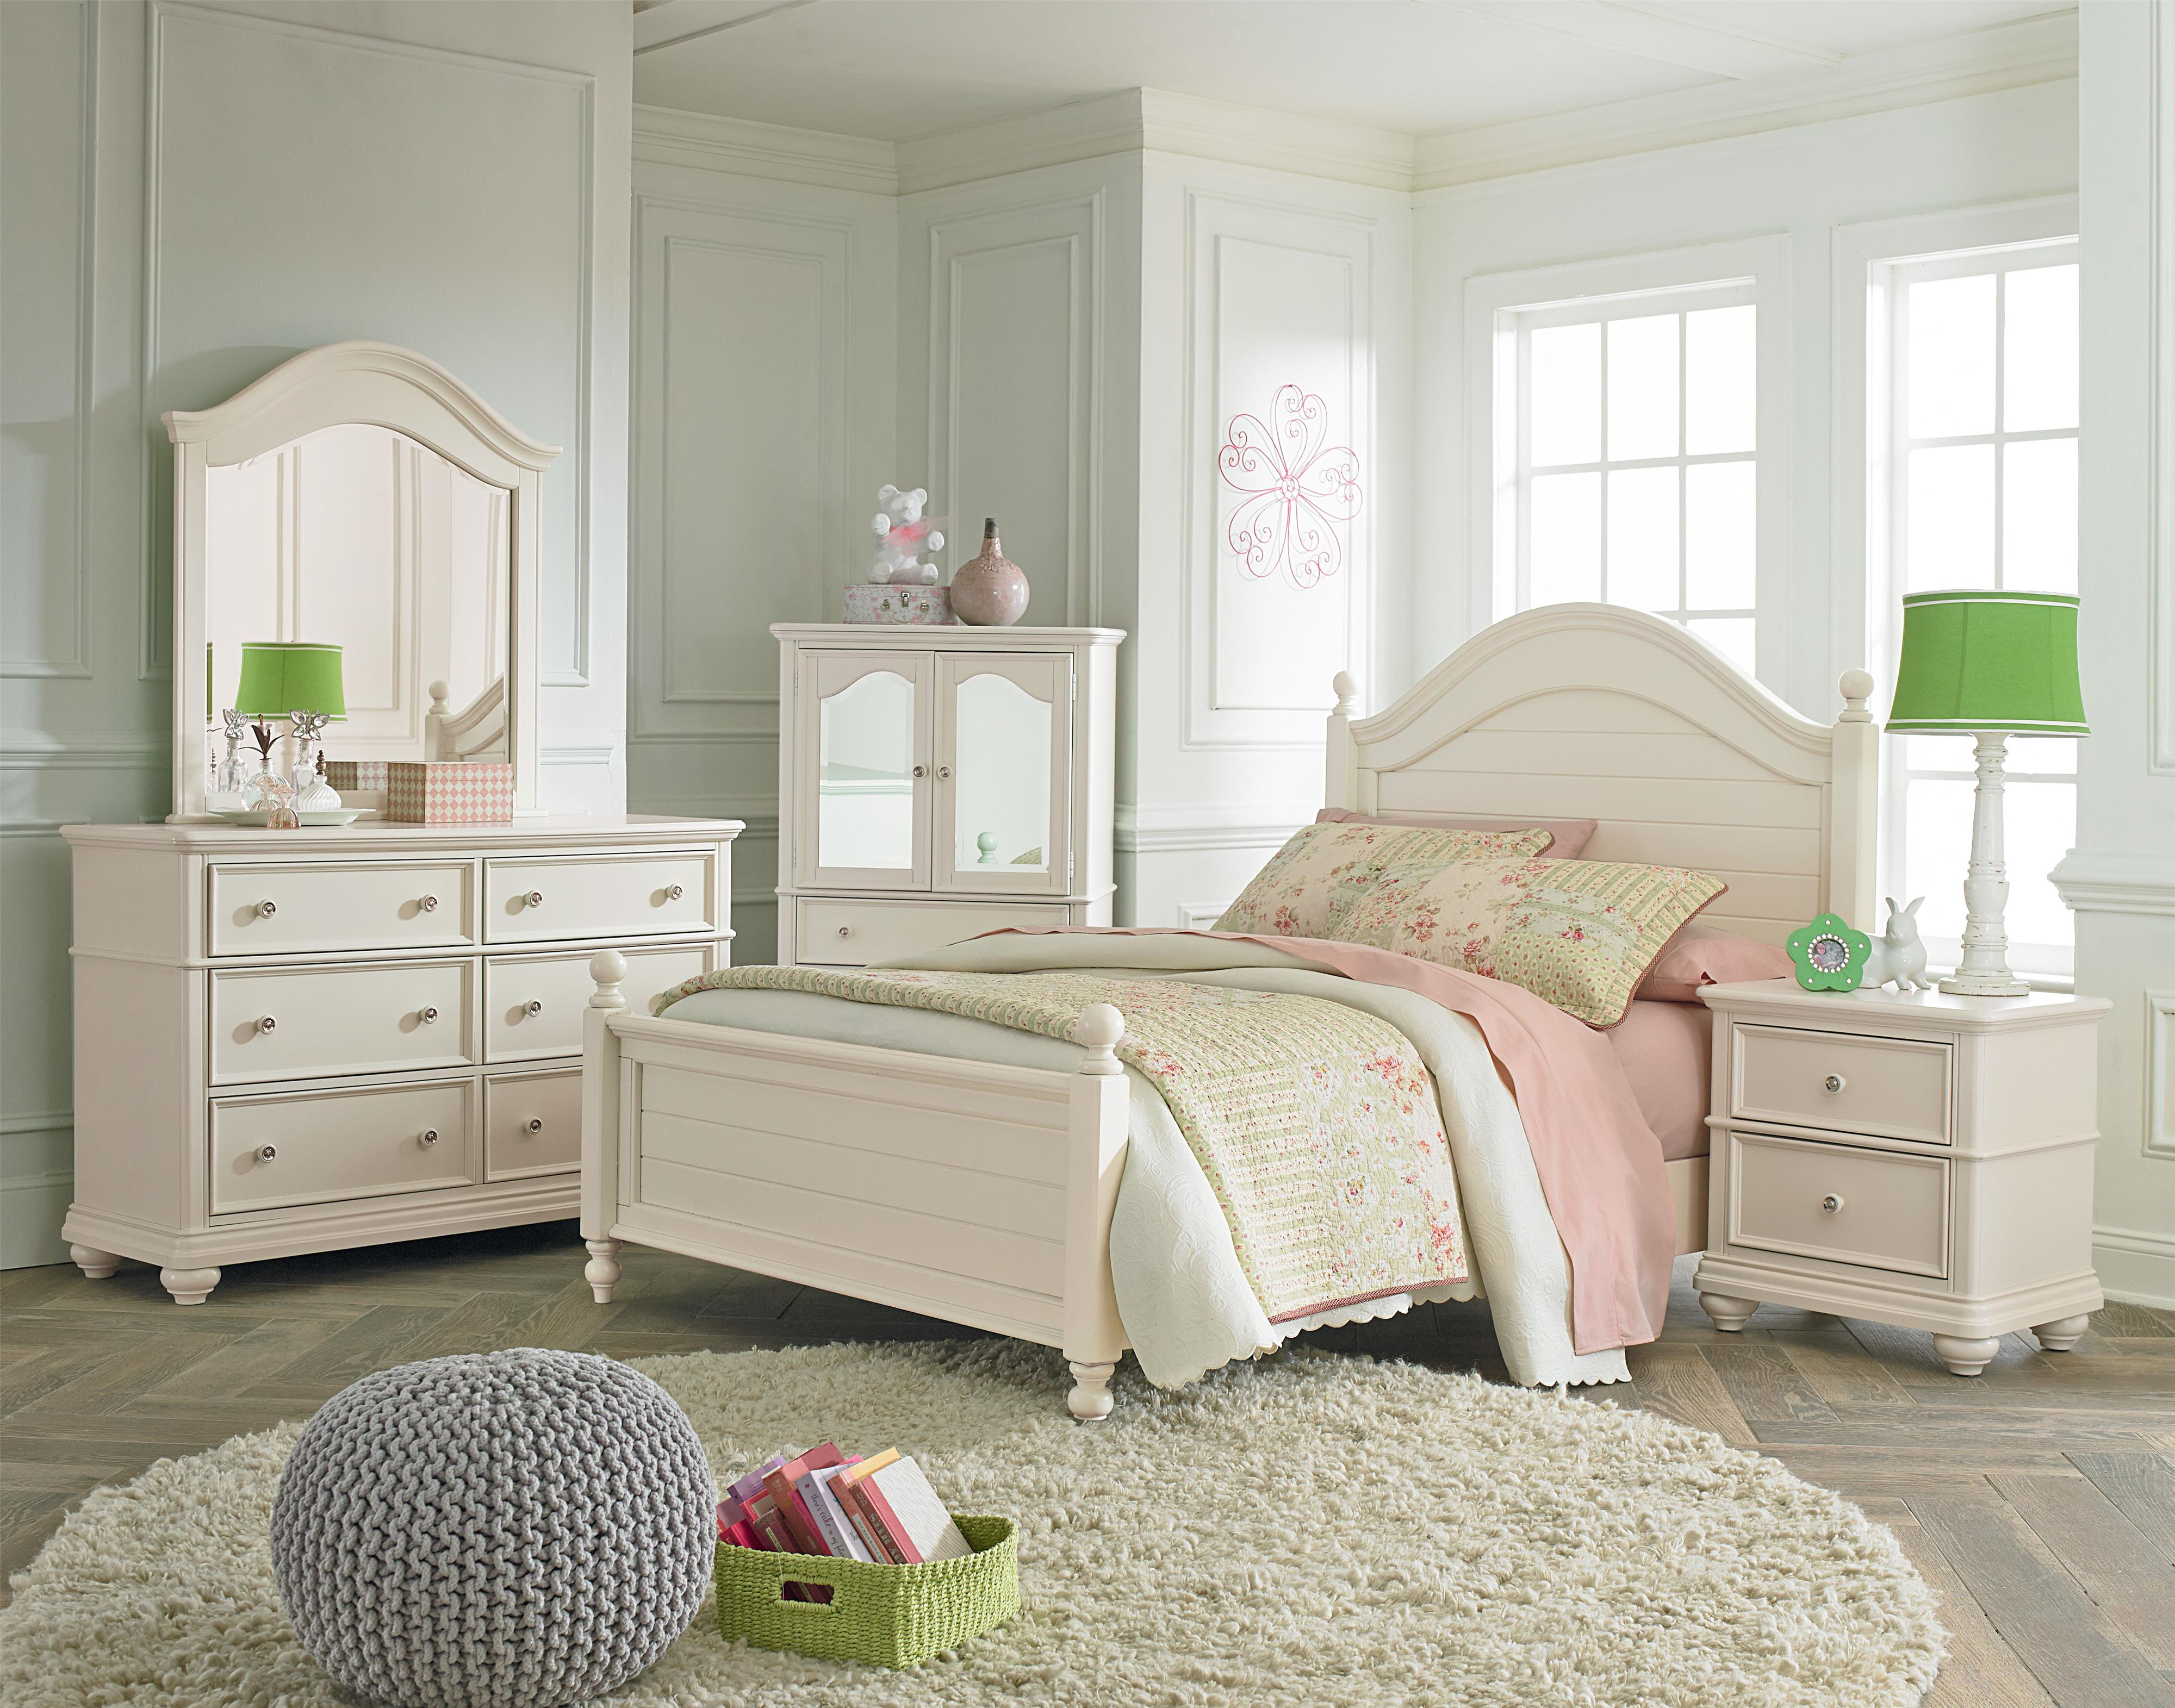 Standard Furniture Camellia Marshmallow Twin Bedroom Group - Item Number: 95200 T Bedroom Group 1